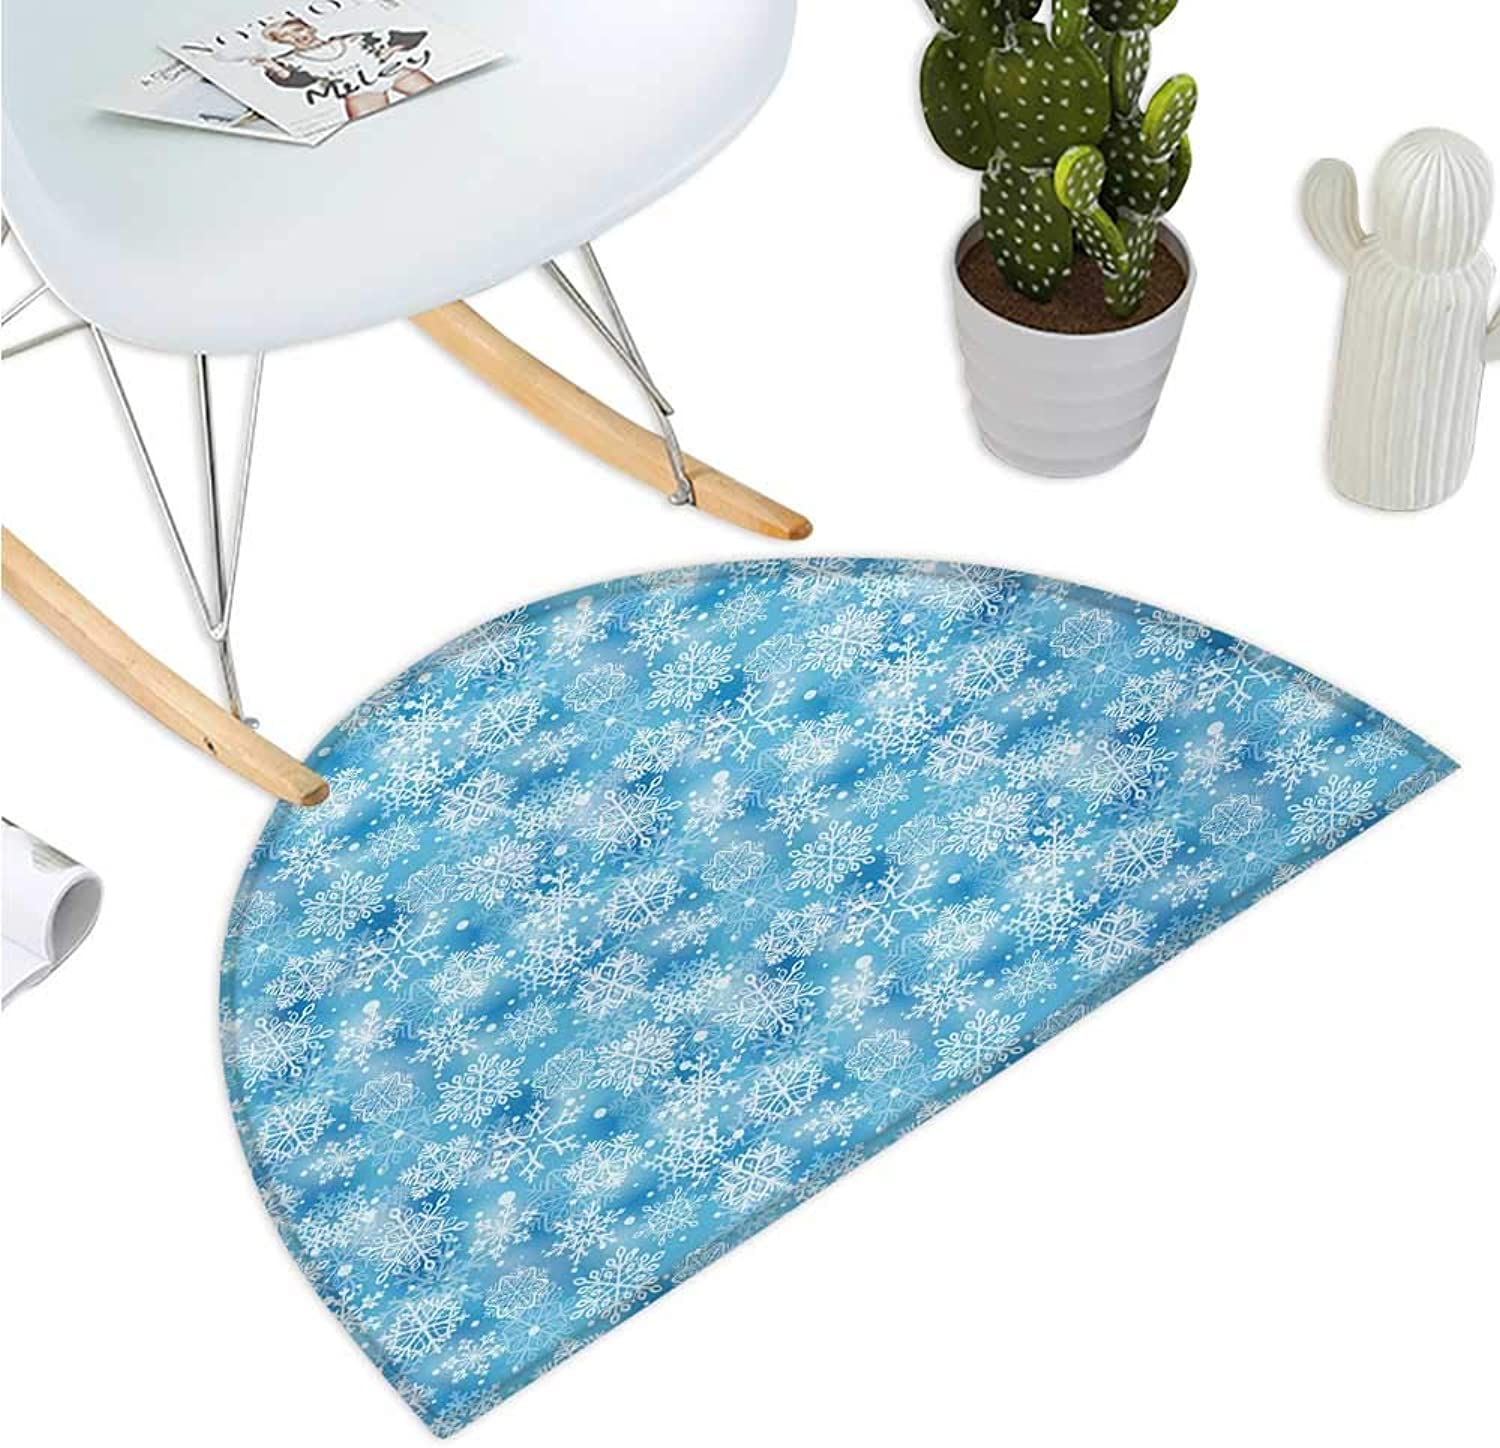 Snowflake Semicircle Doormat Pattern of Winter Motifs Cold Weather Illustration with Abstract Circles Entry Door Mat H 51.1  xD 76.7  Pale bluee White